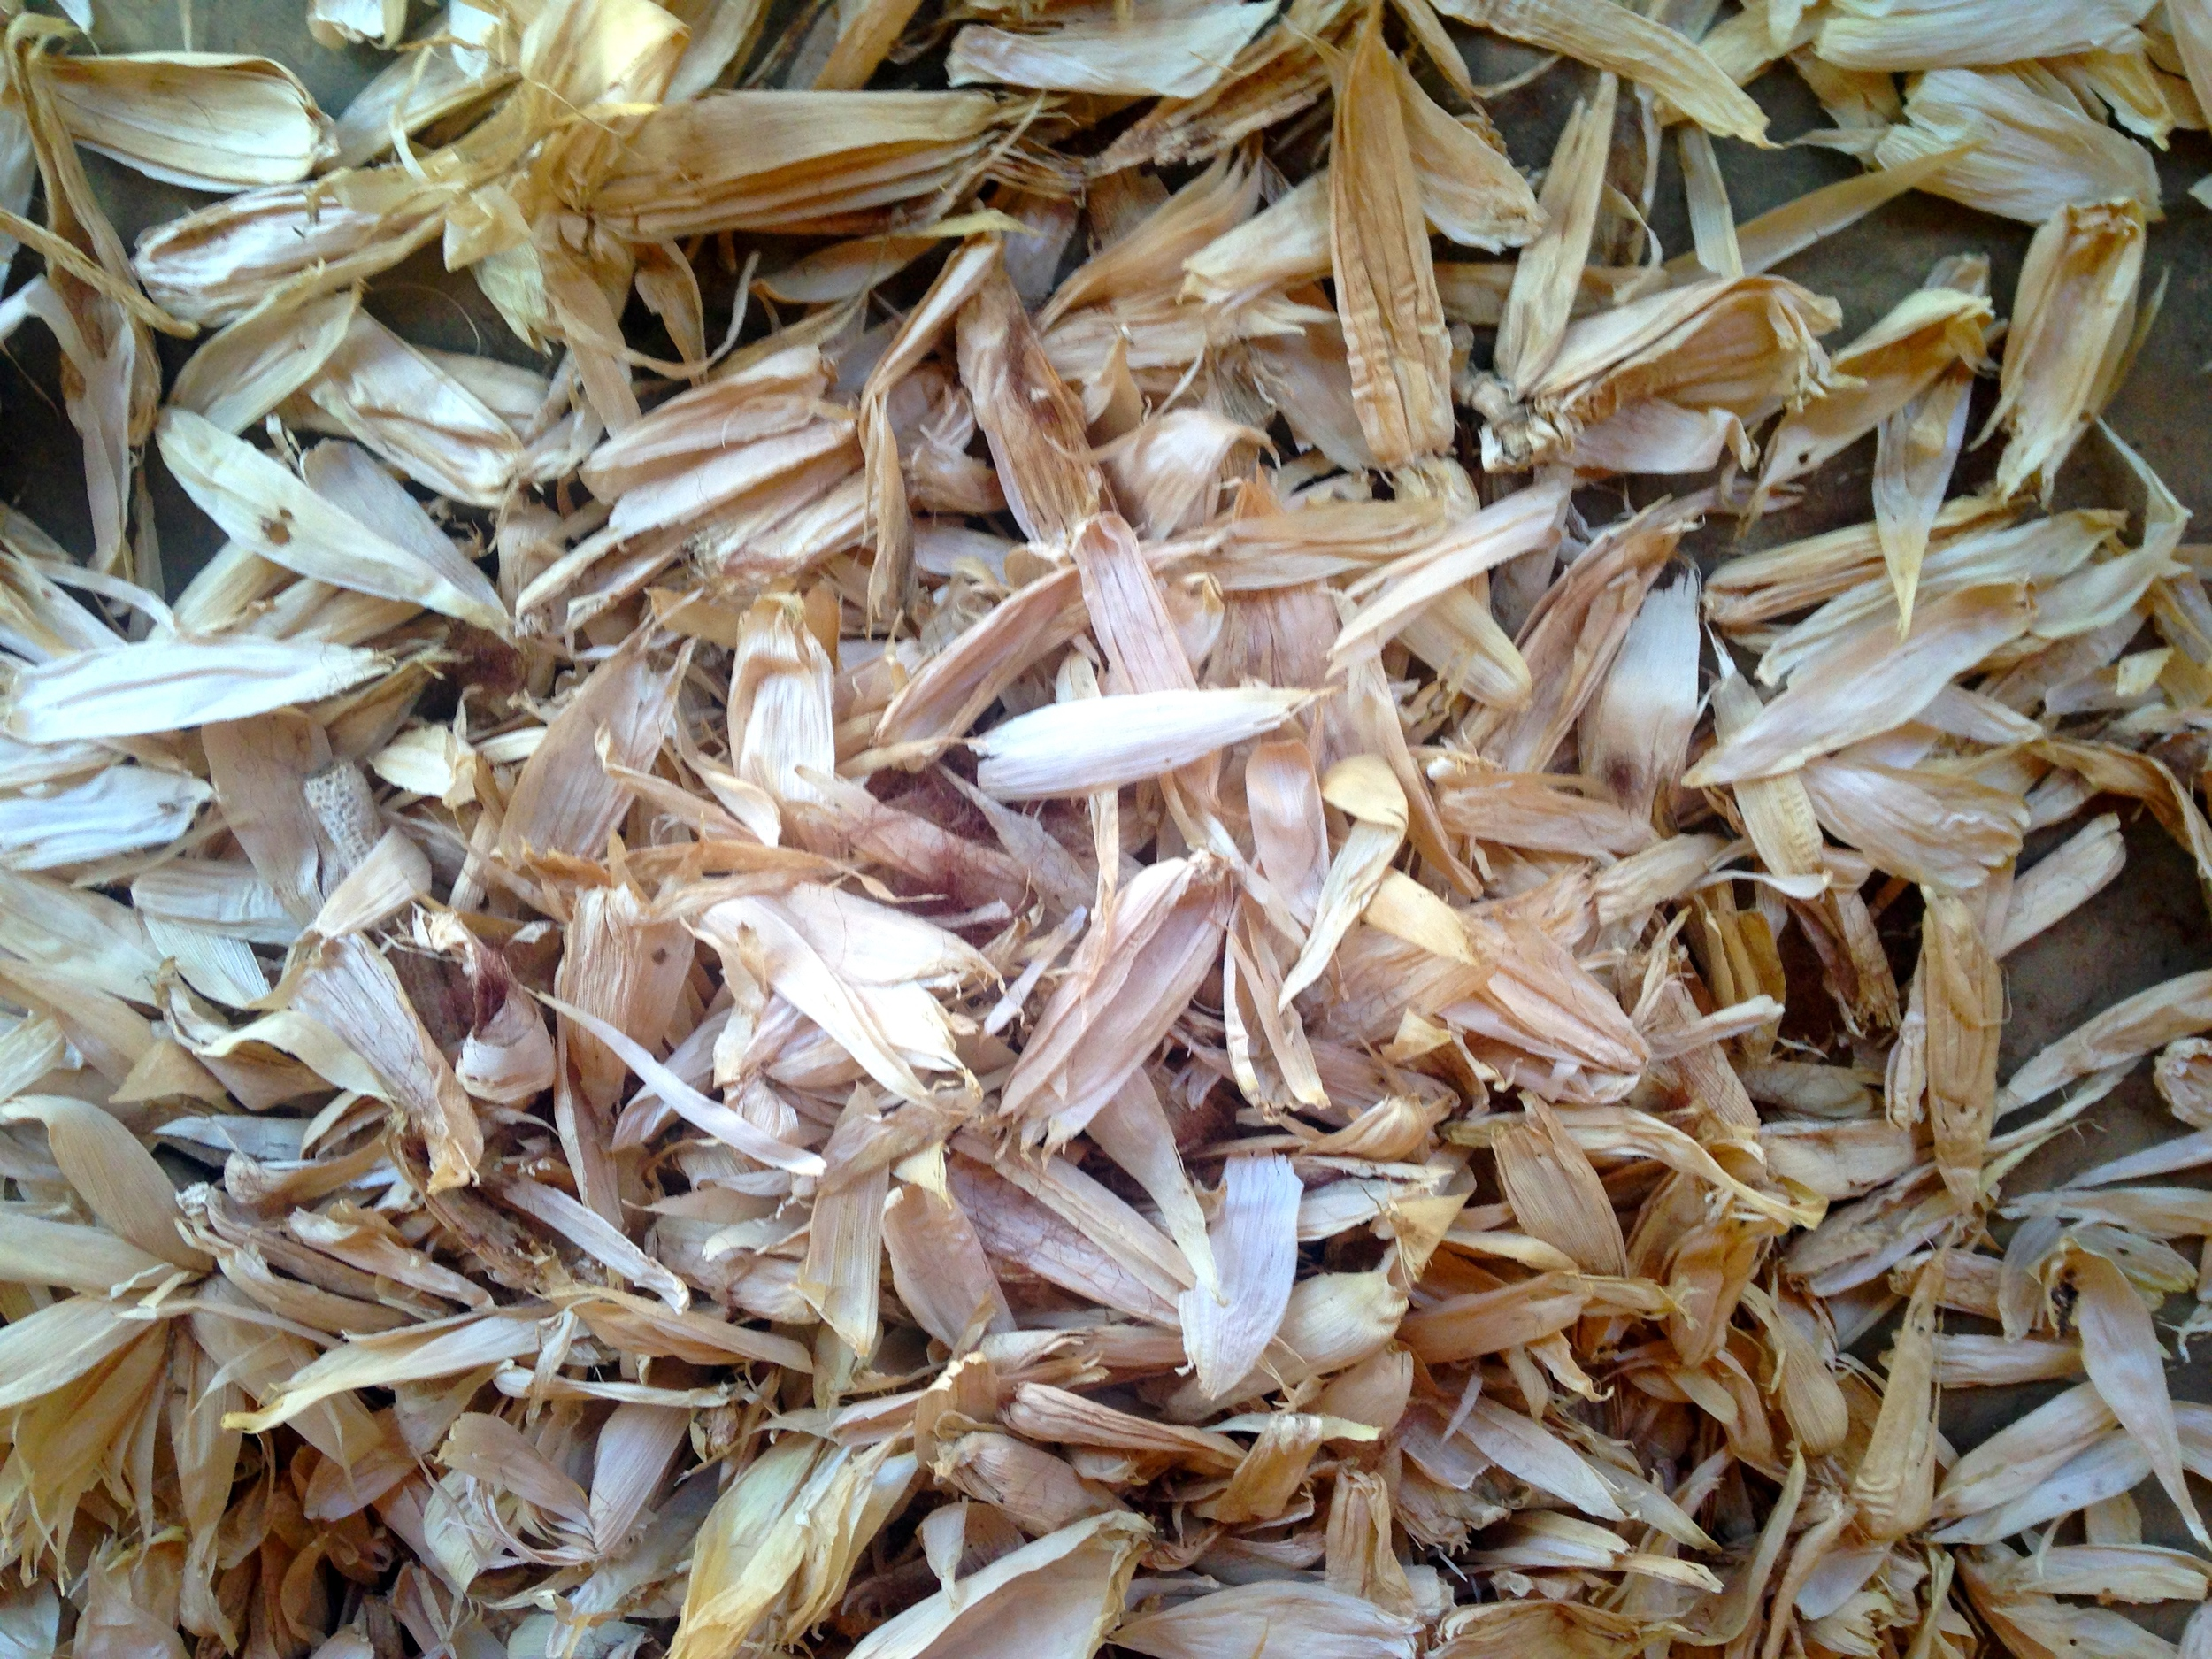 Corn husks, used for tamales, animal feed and a fuel source